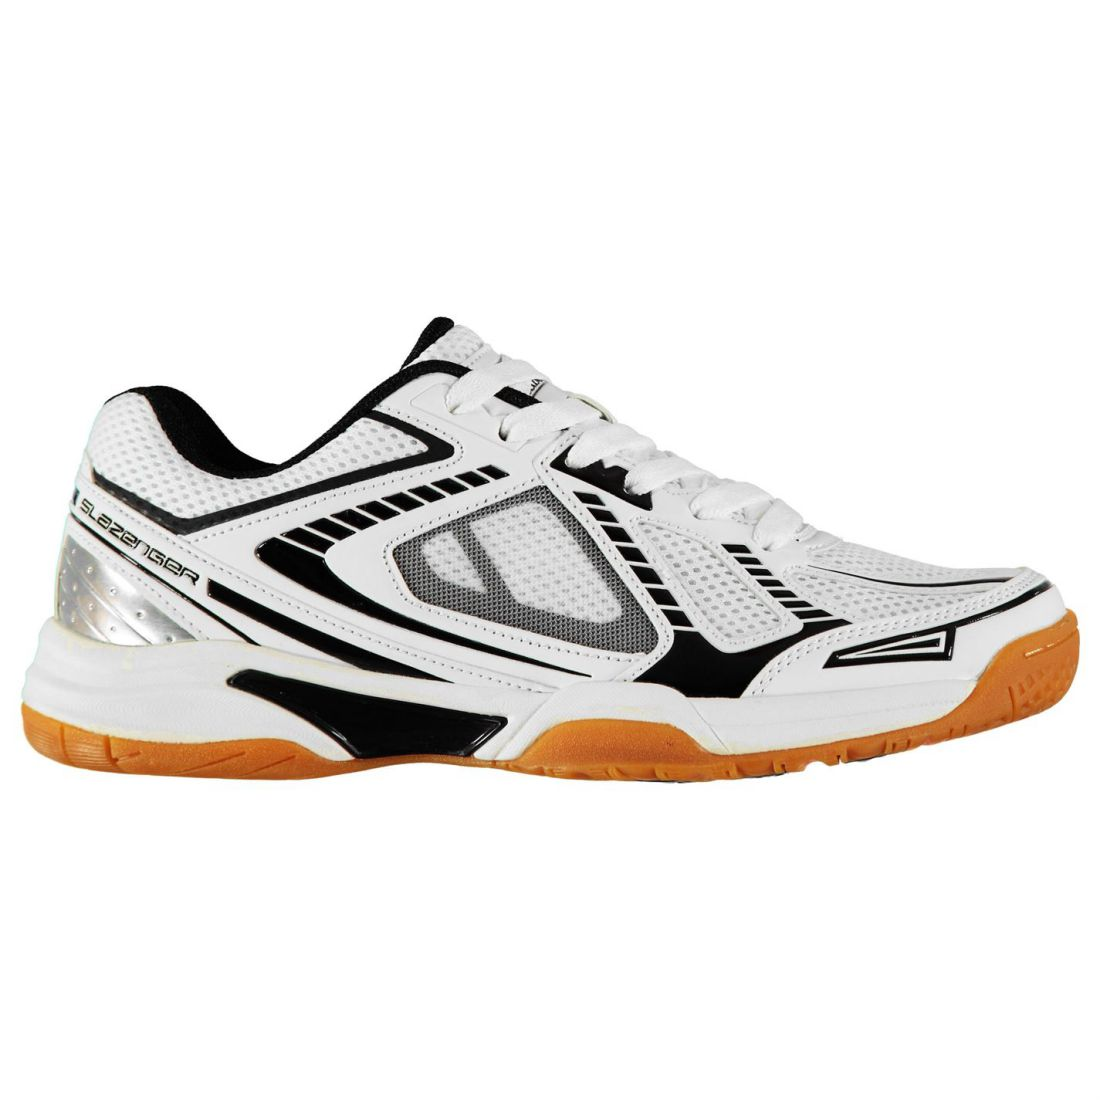 Image is loading Slazenger-Mens-Indoor-Trainers-Squash-Shoes-Lace-Up- dc1e0e6392